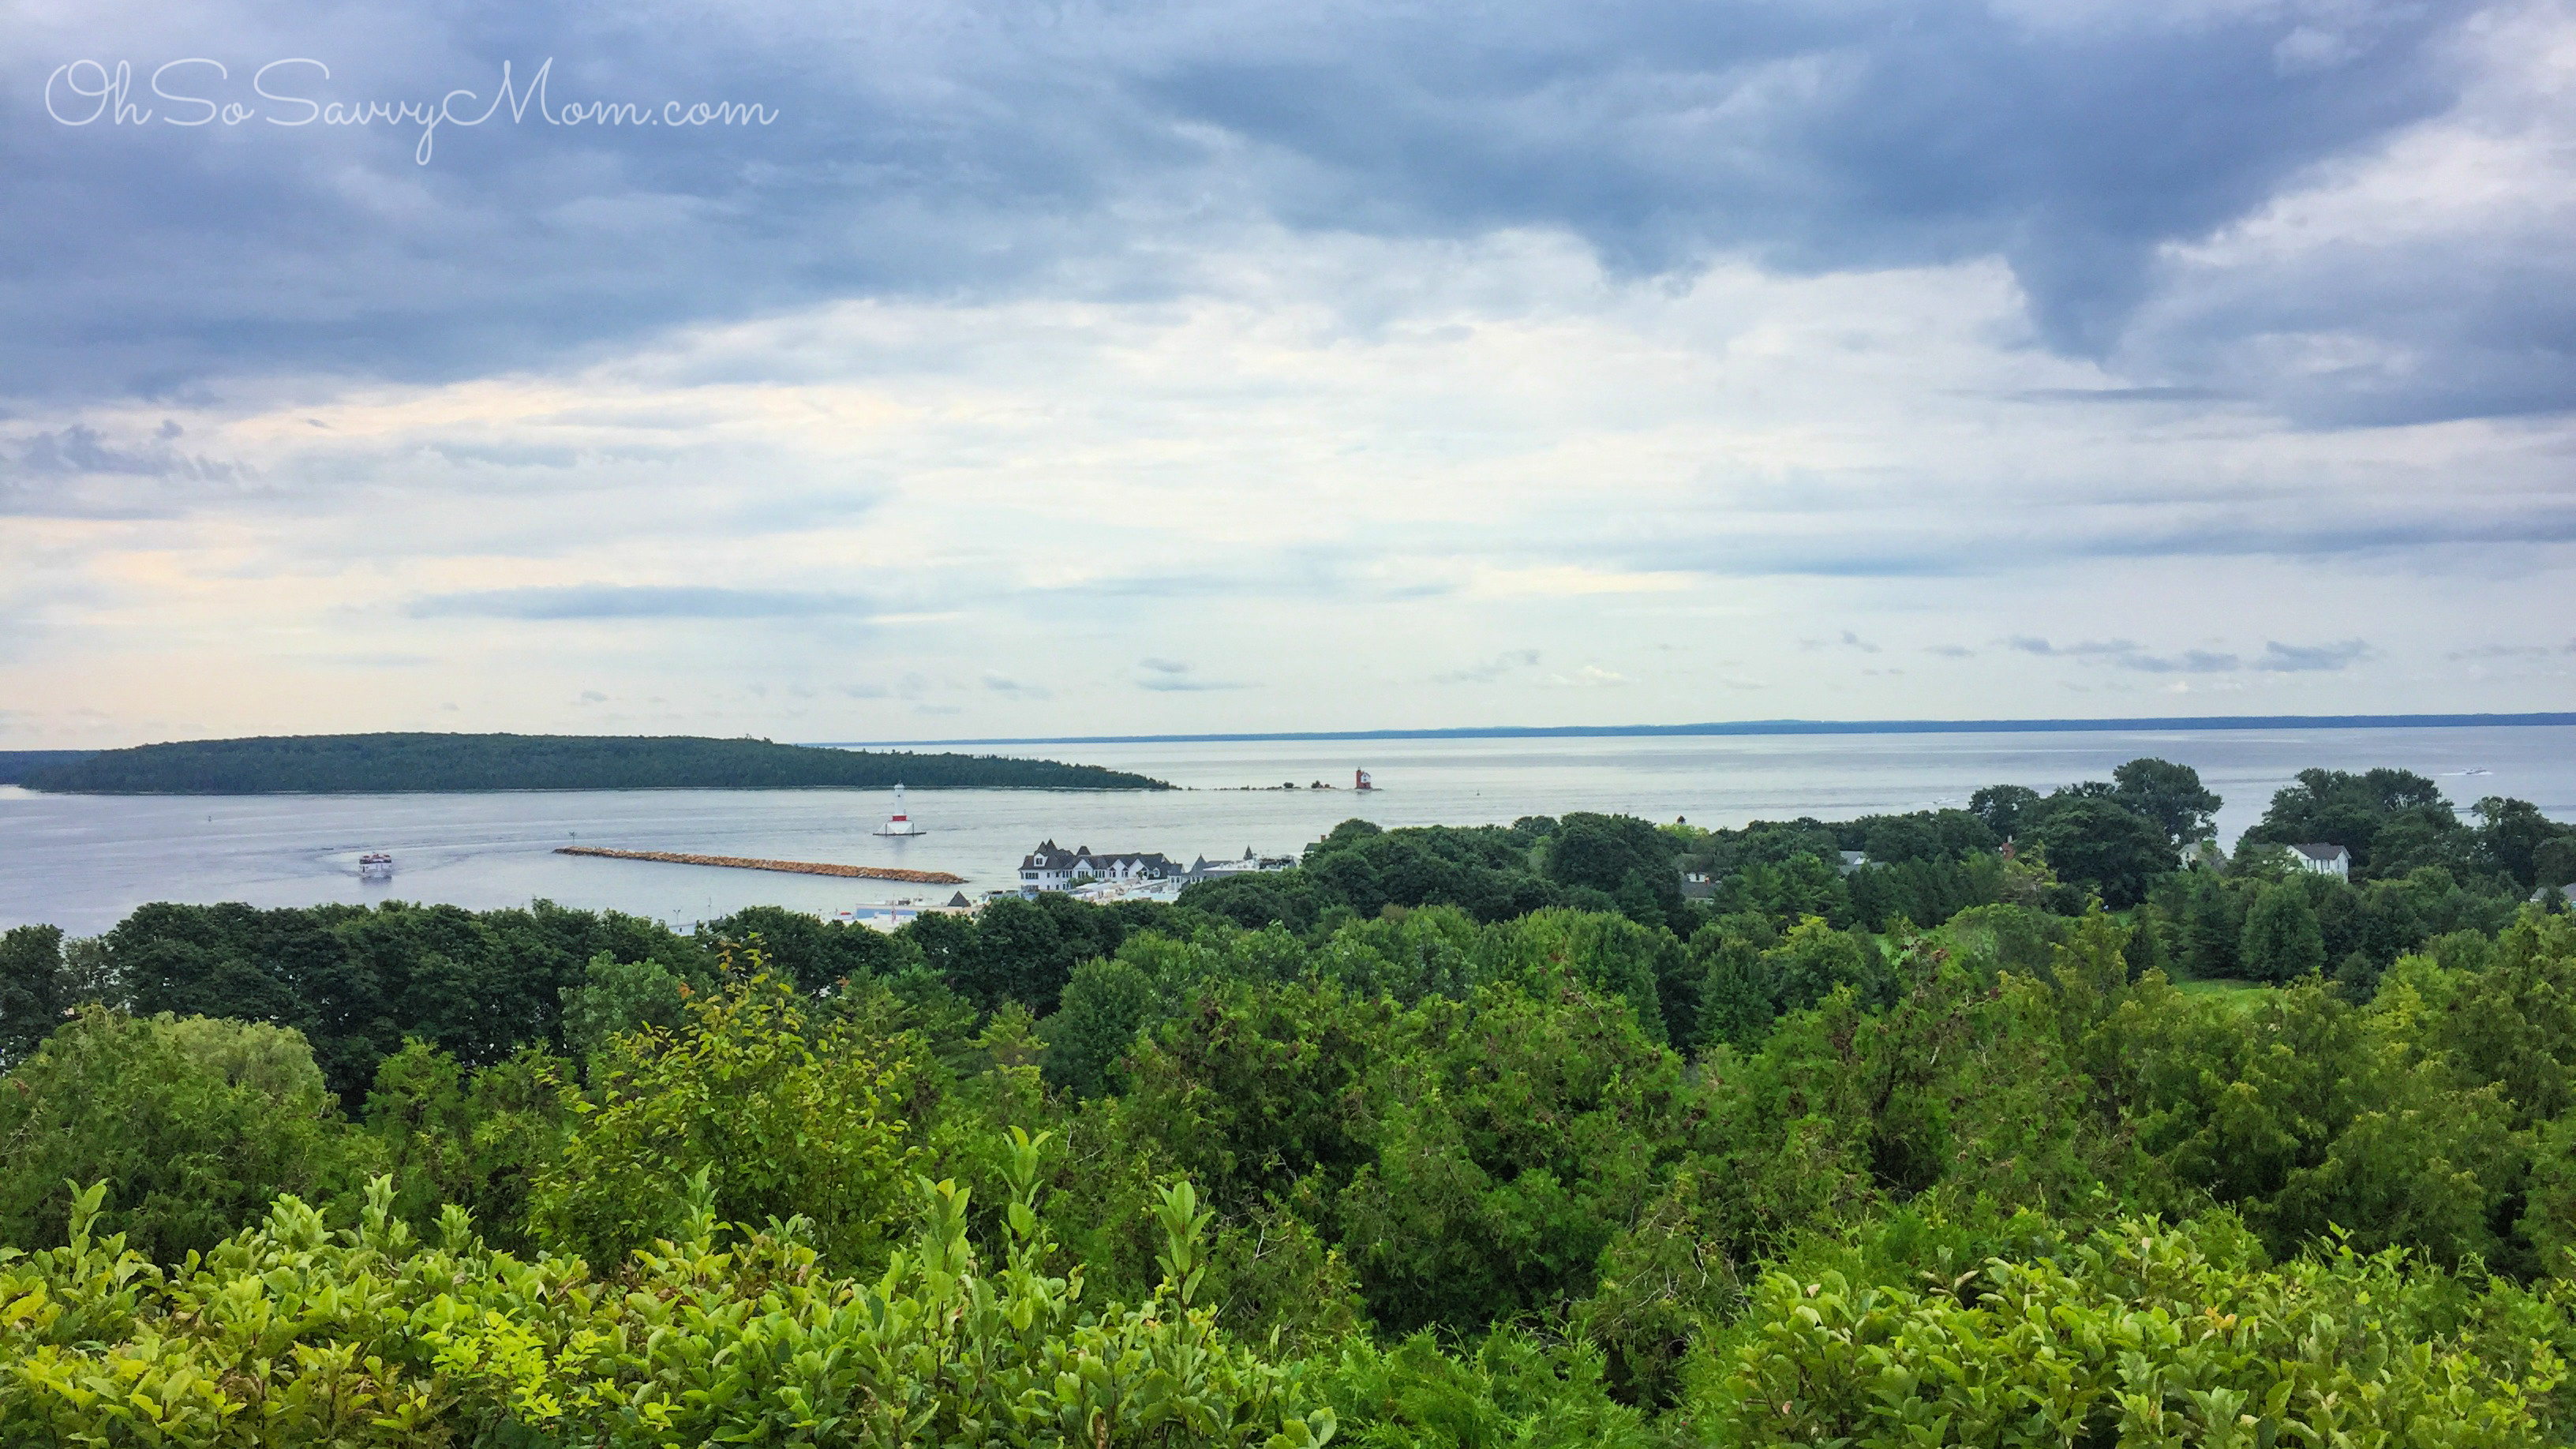 View of the Great Lakes from Mackinac Island